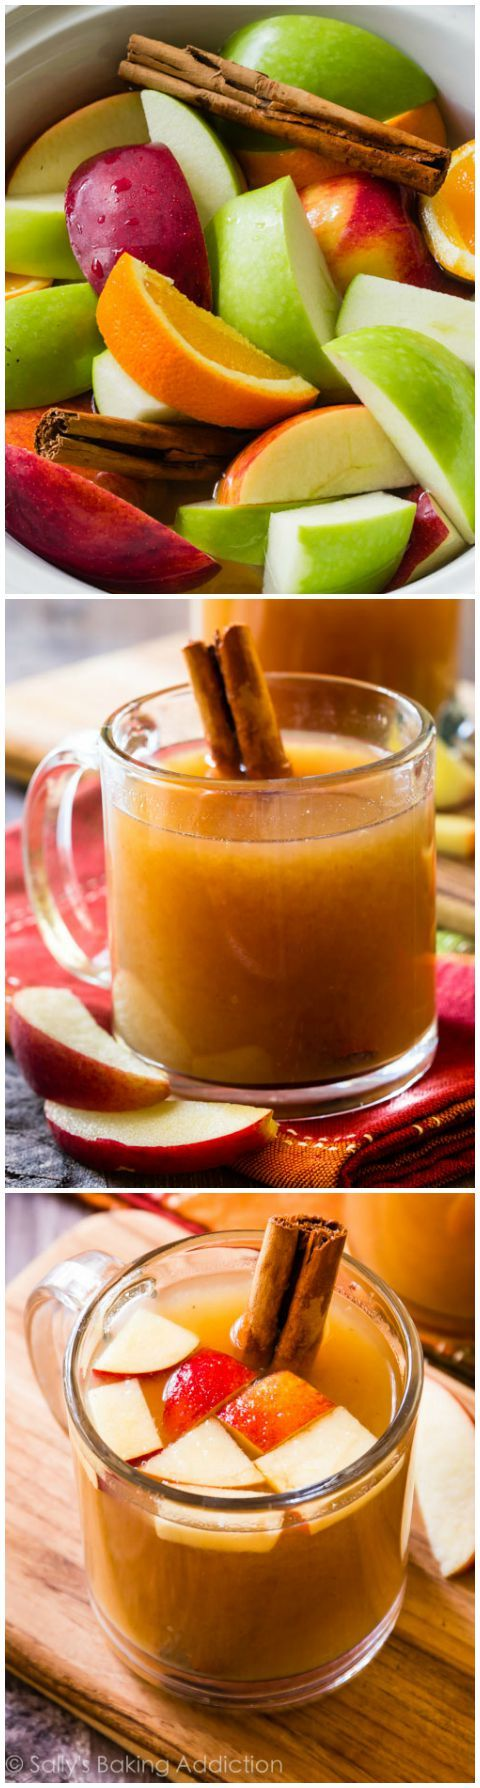 Slow cooker apple cider is a MUST MAKE for fall. I've been making this every single weekend. You control the sugar and spice!